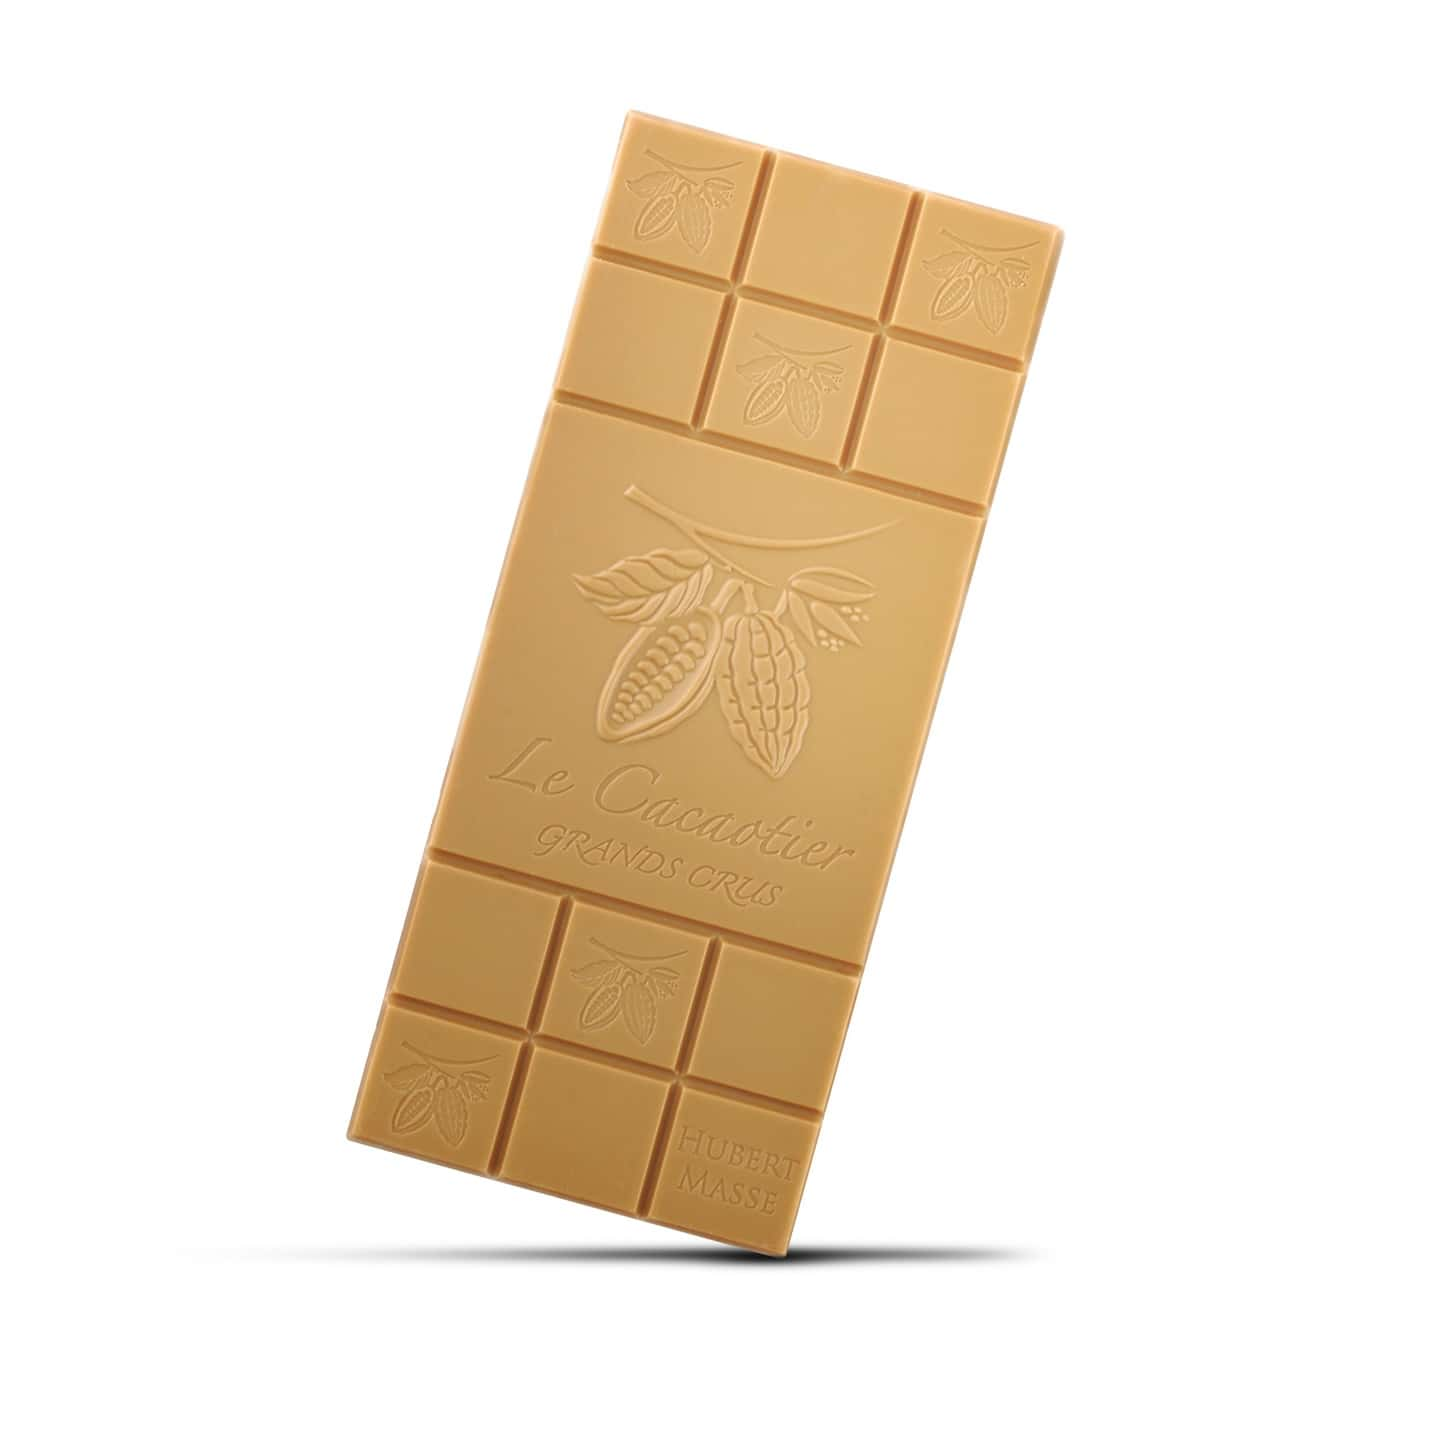 Tablette Chocolat Blond 90g